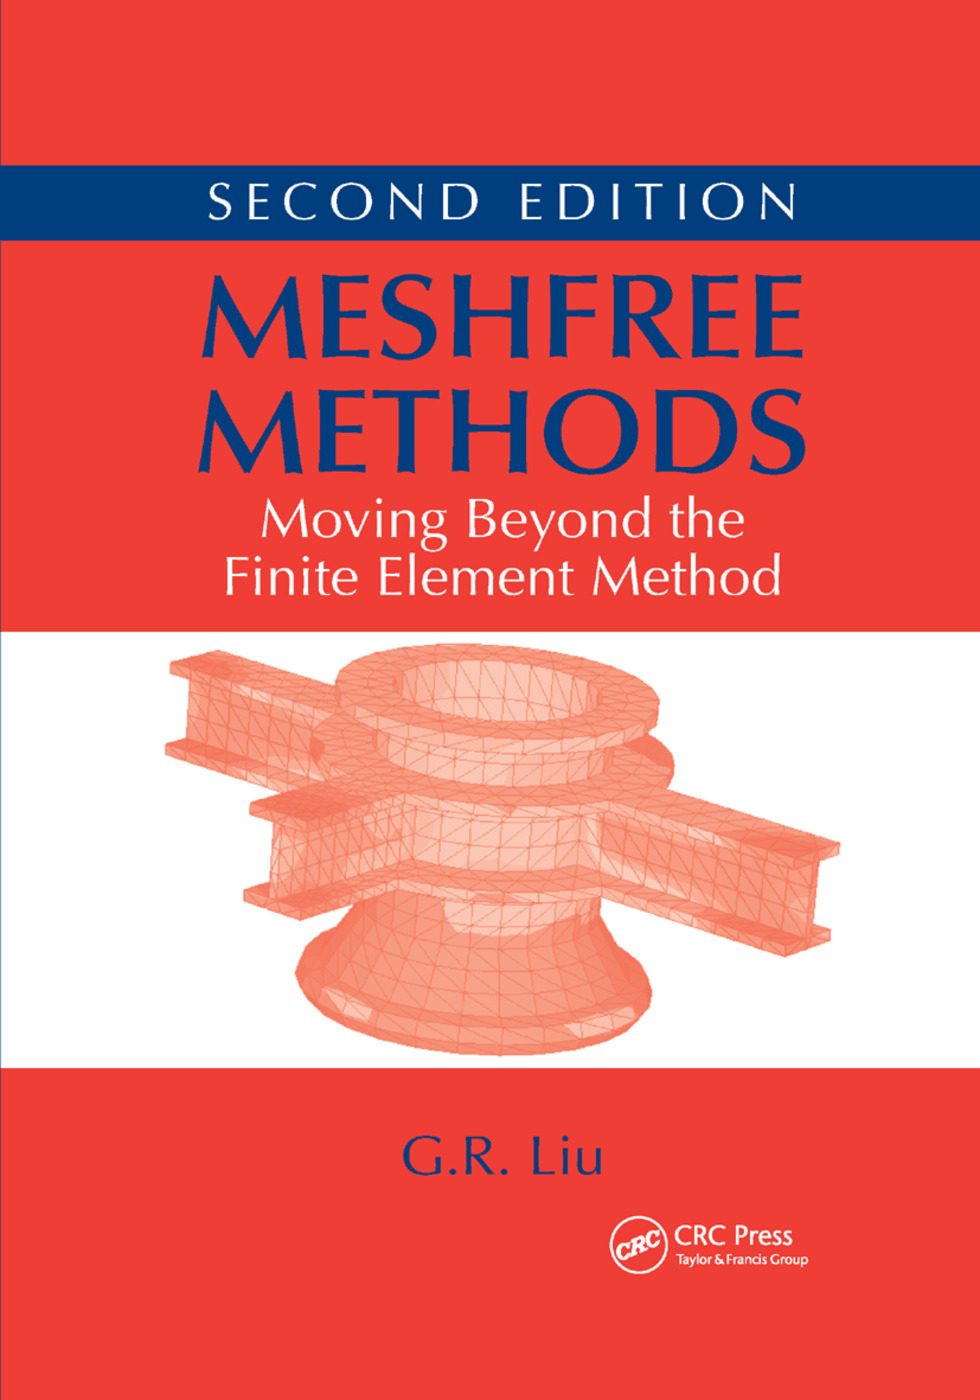 Meshfree Methods